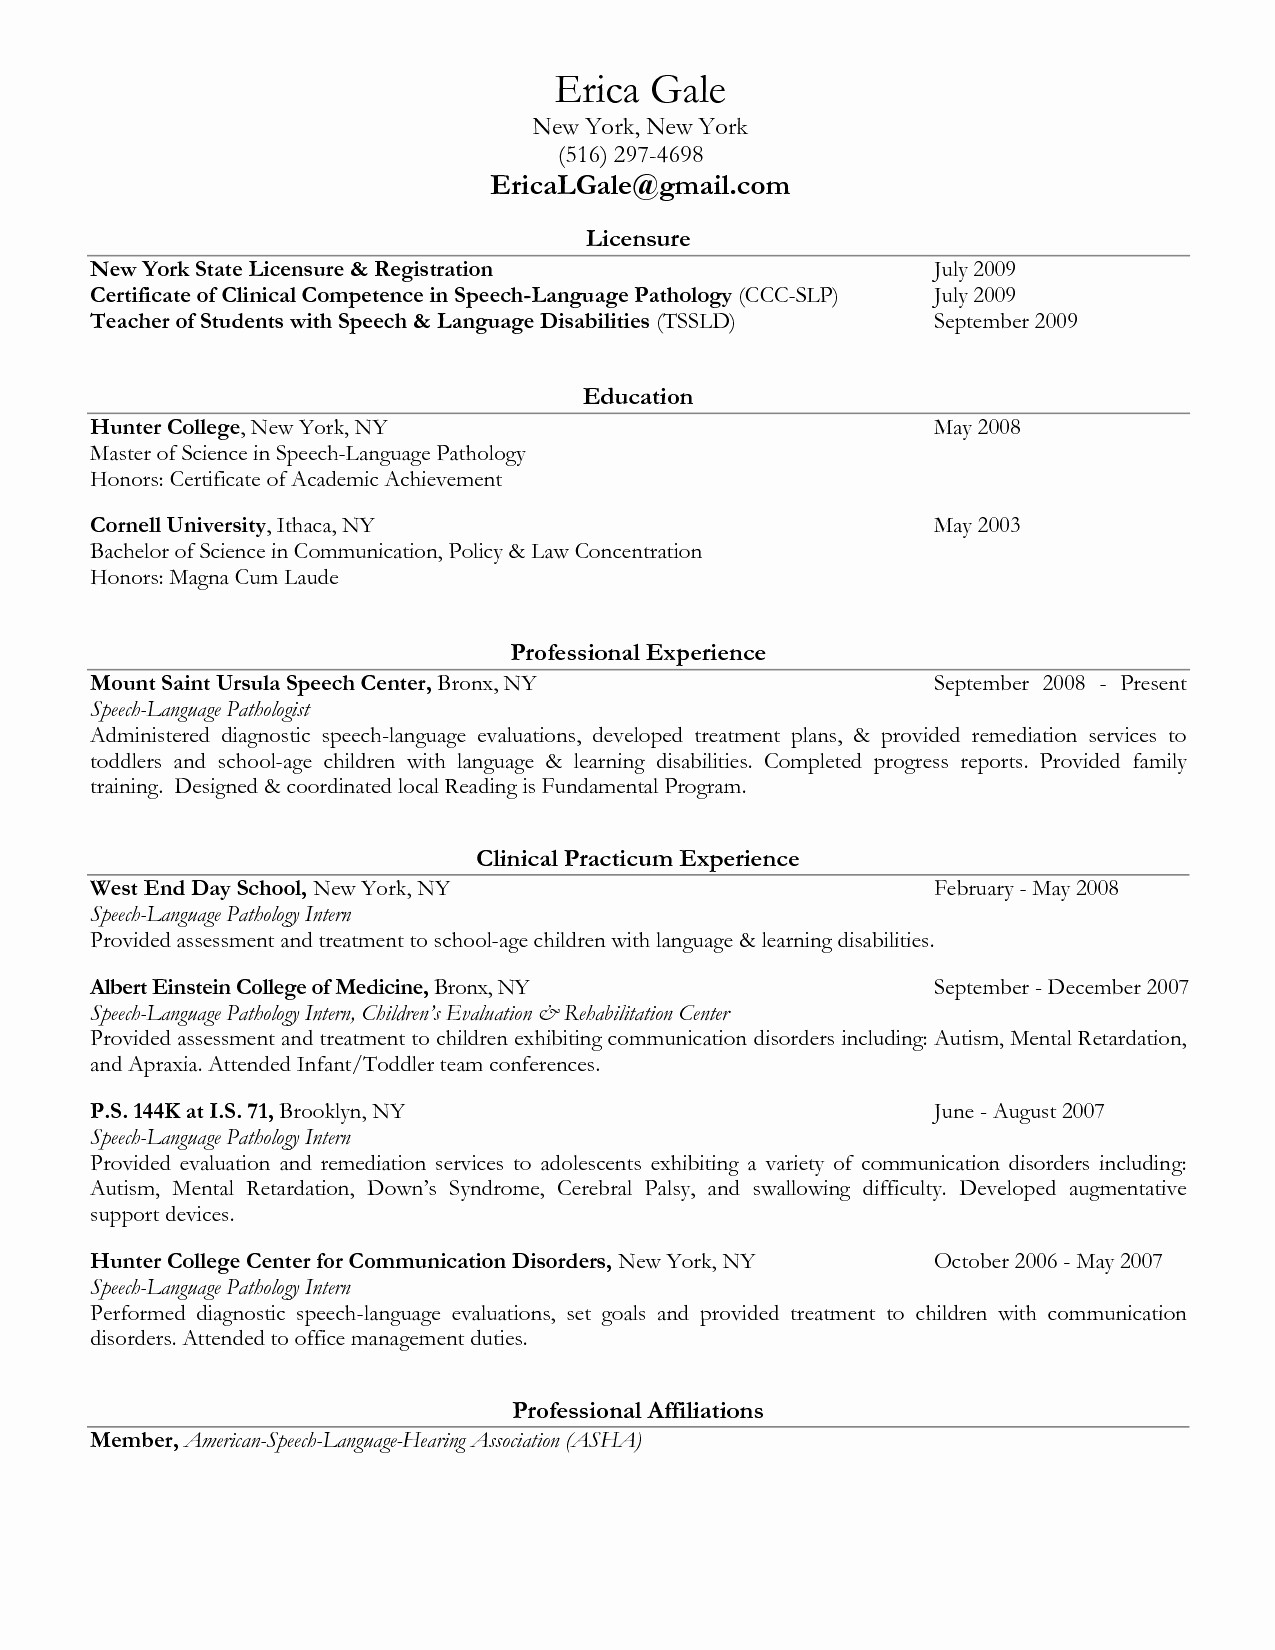 Massage therapy Resume Template - Massage therapy Resume Best Objective Resume Examples Fresh